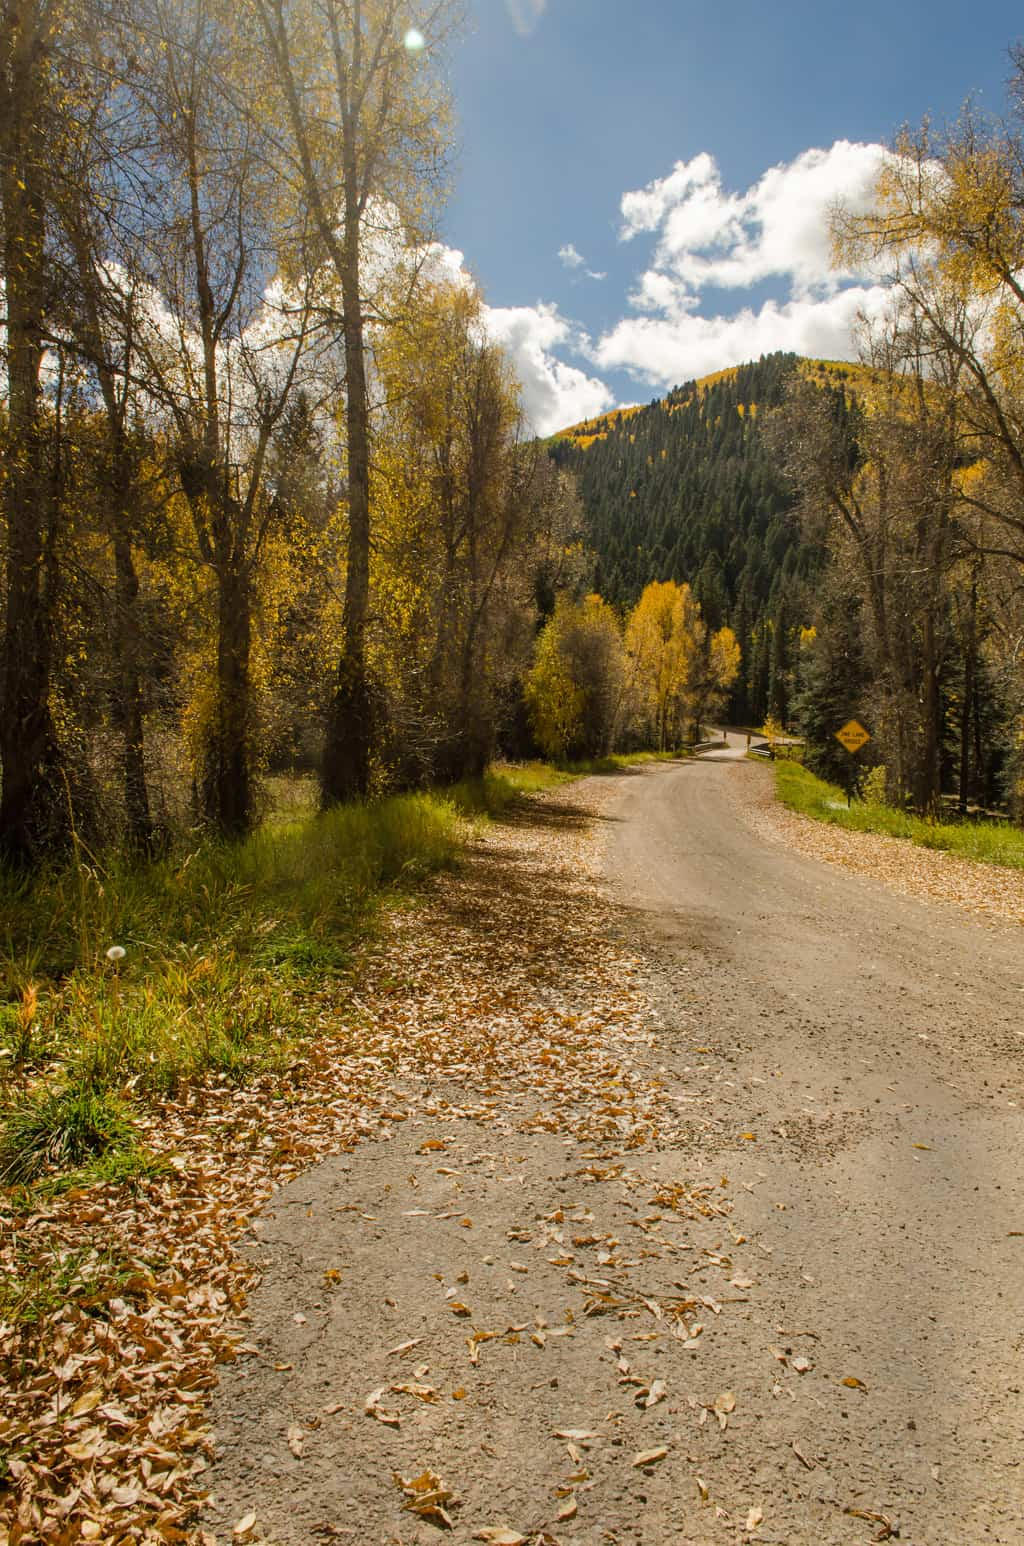 Photo of a country road in the mountains in the fall.